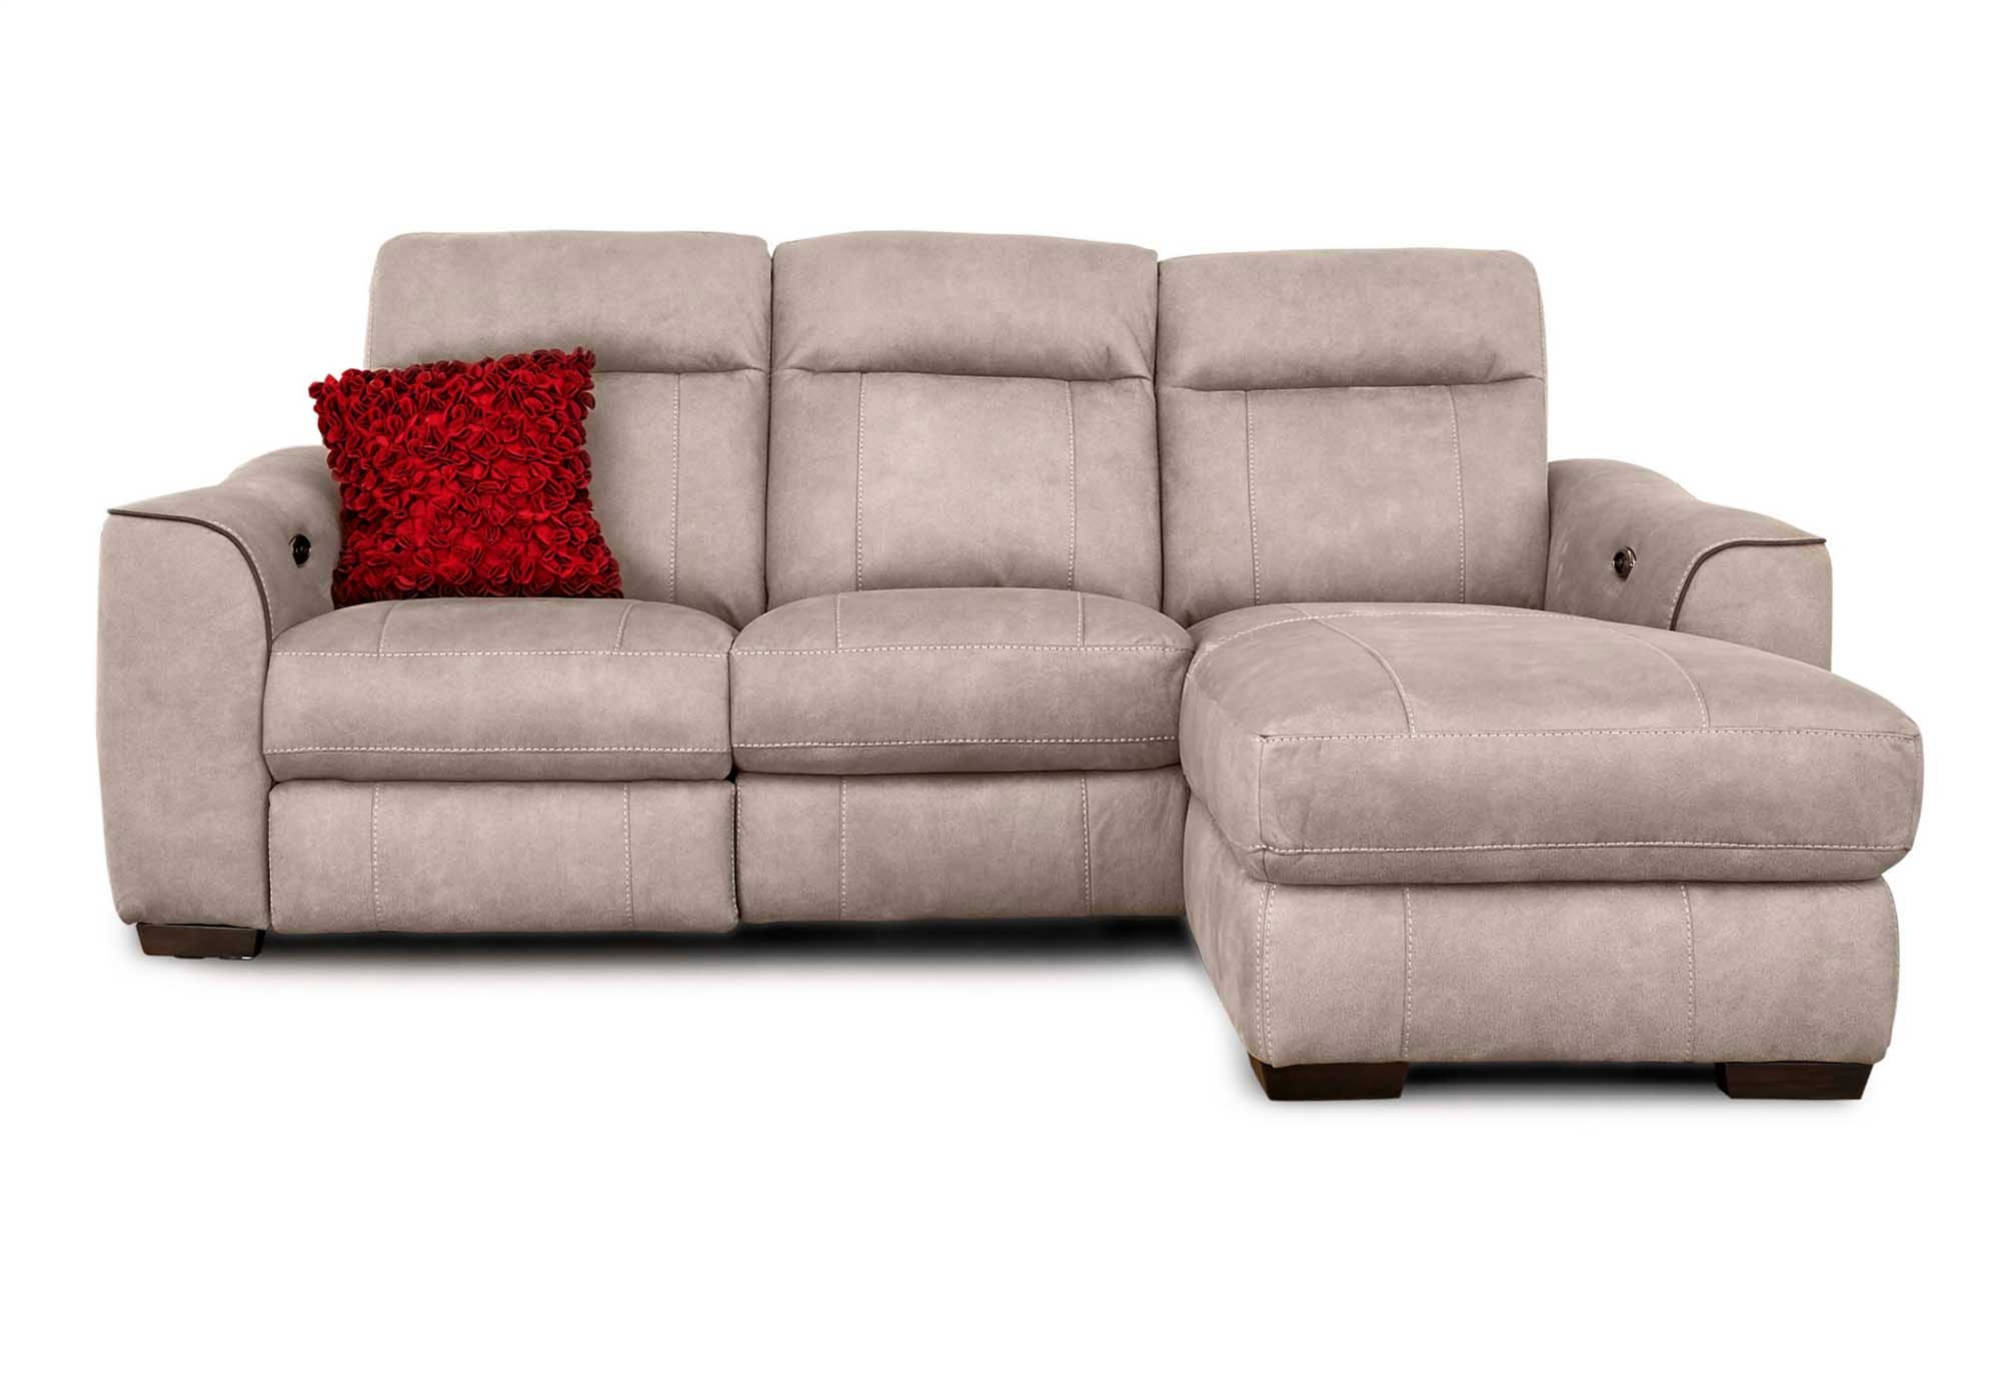 Best htl furniture reviews homesfeed for Best sofas 2016